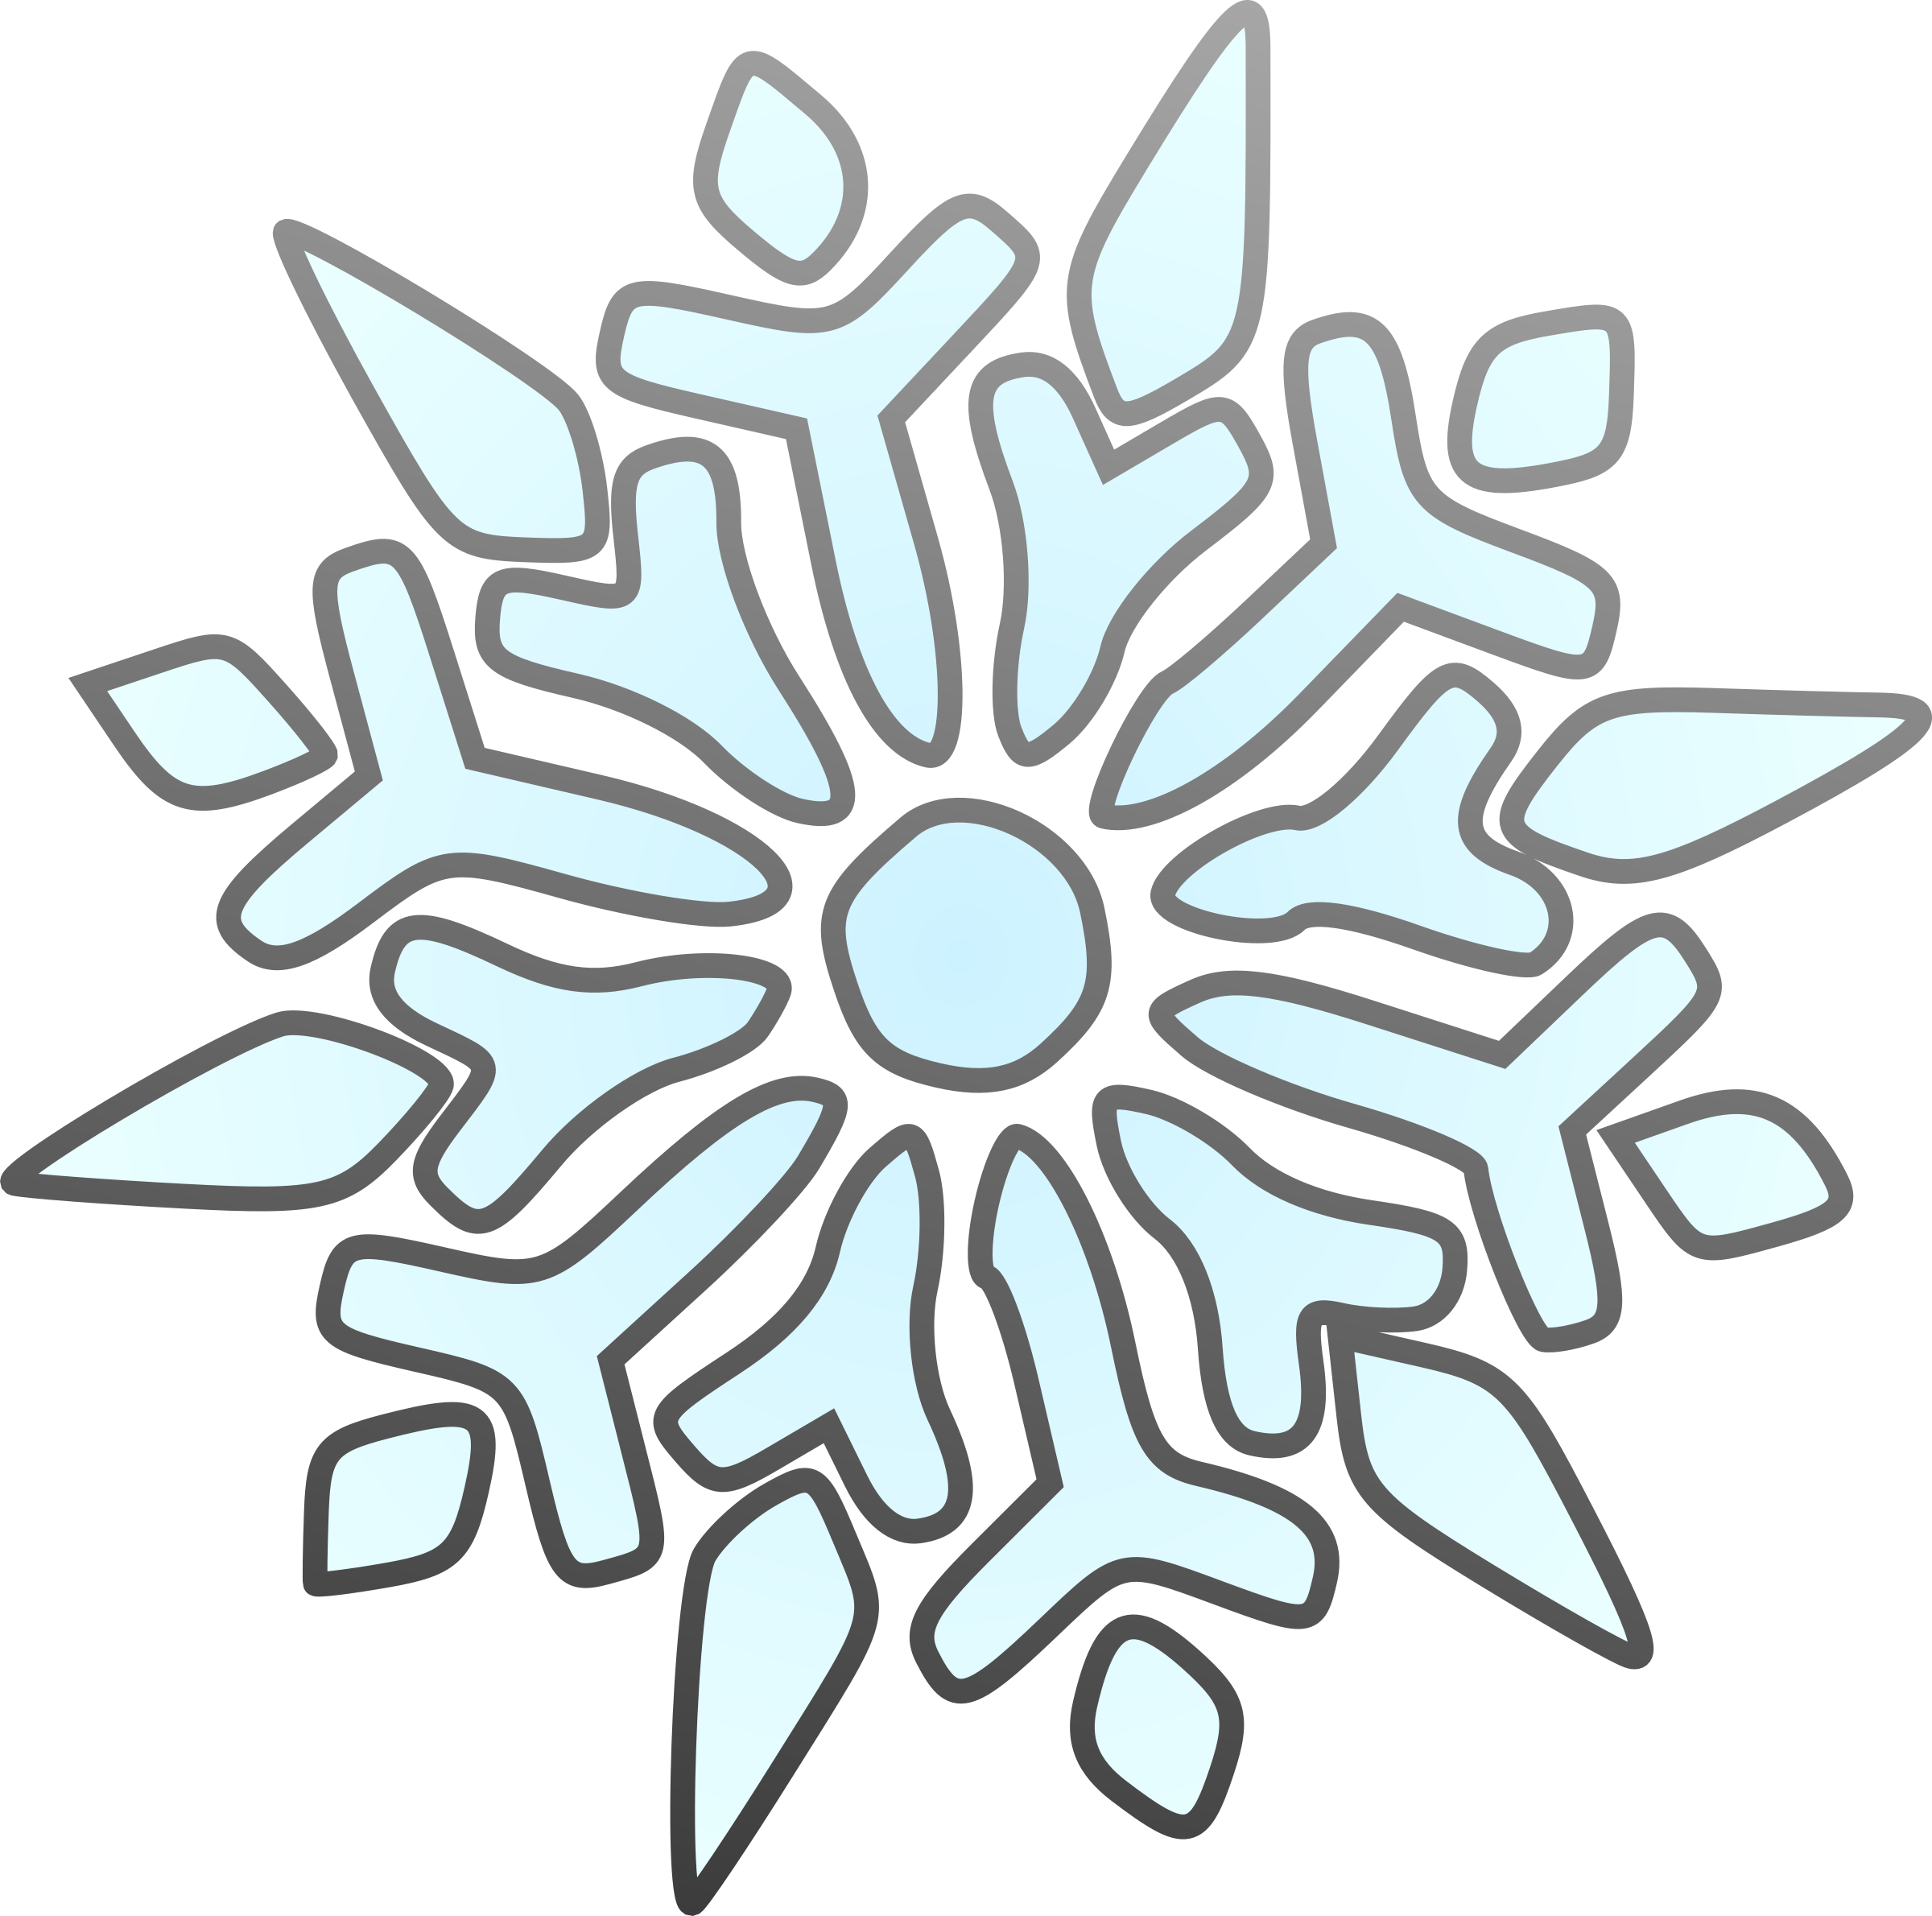 Single Snowflake by erik_